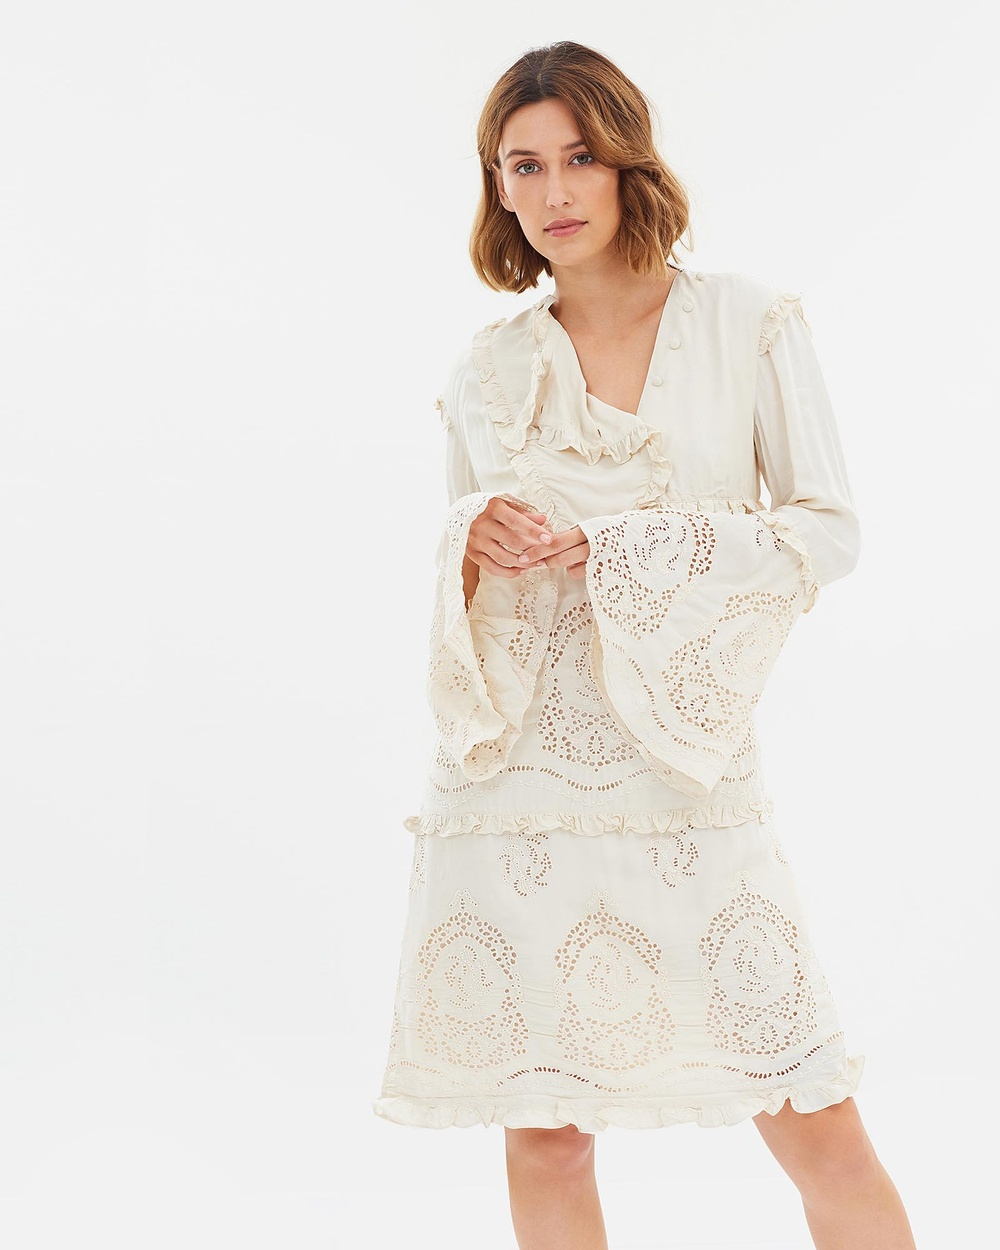 Maison Scotch Eyelet Suit Dress Dresses Vintage White Eyelet Suit Dress